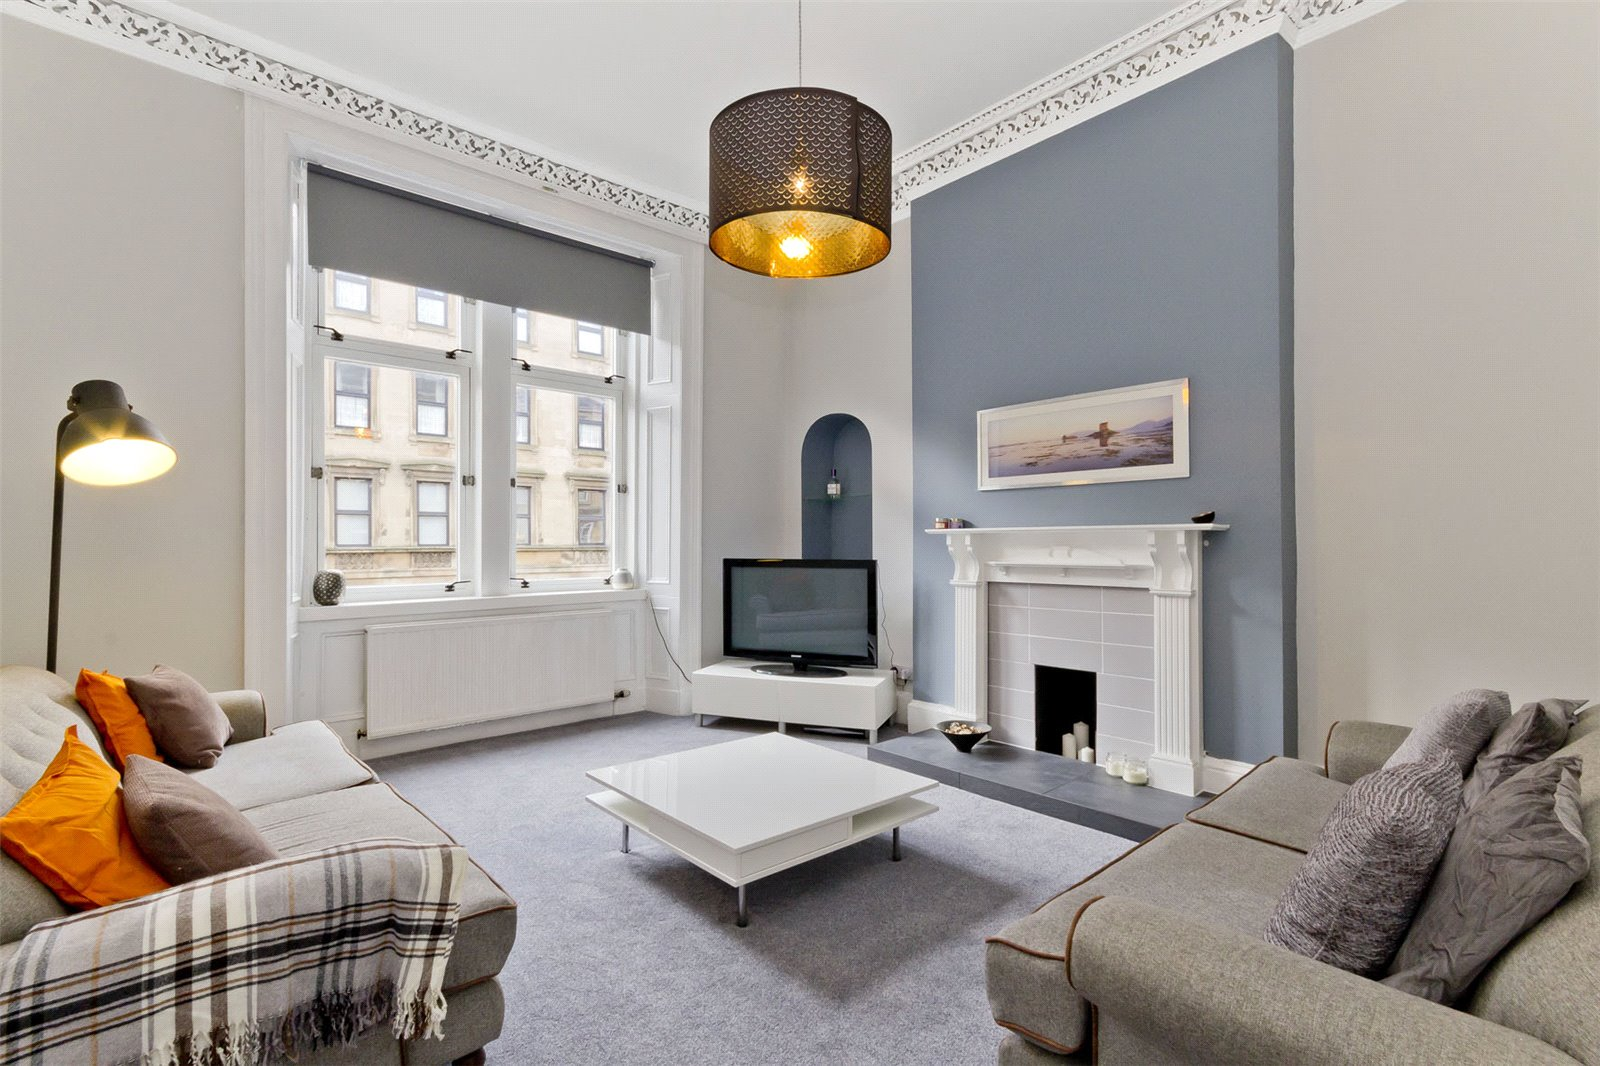 Four fabulous Glasgow flats for under £200,000